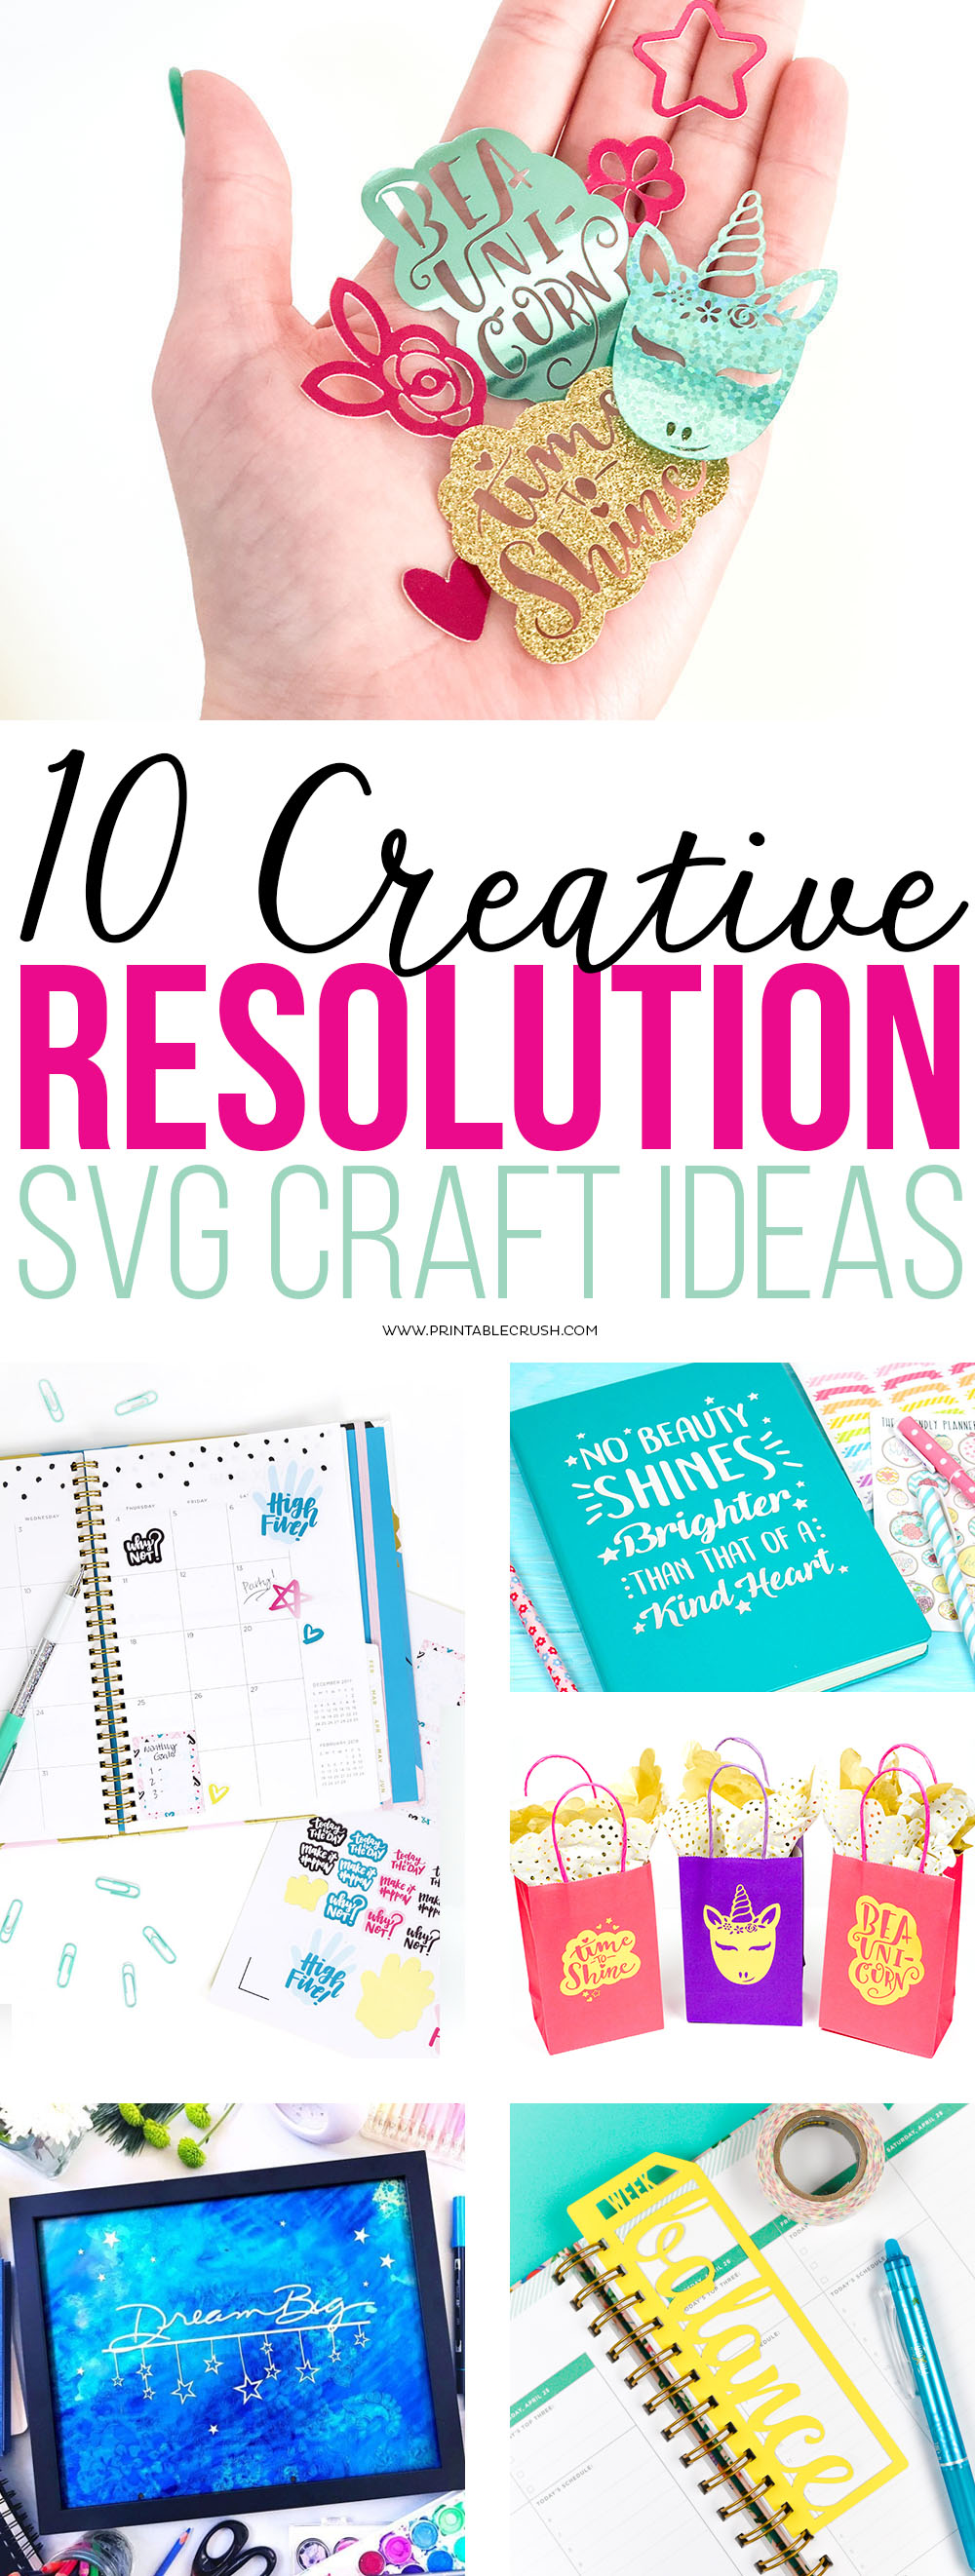 Get inspiration for your Resolutions with these10 Creative Resolution SVG Craft Ideas! From journaling to party ideas, we've got you covered! via @printablecrush